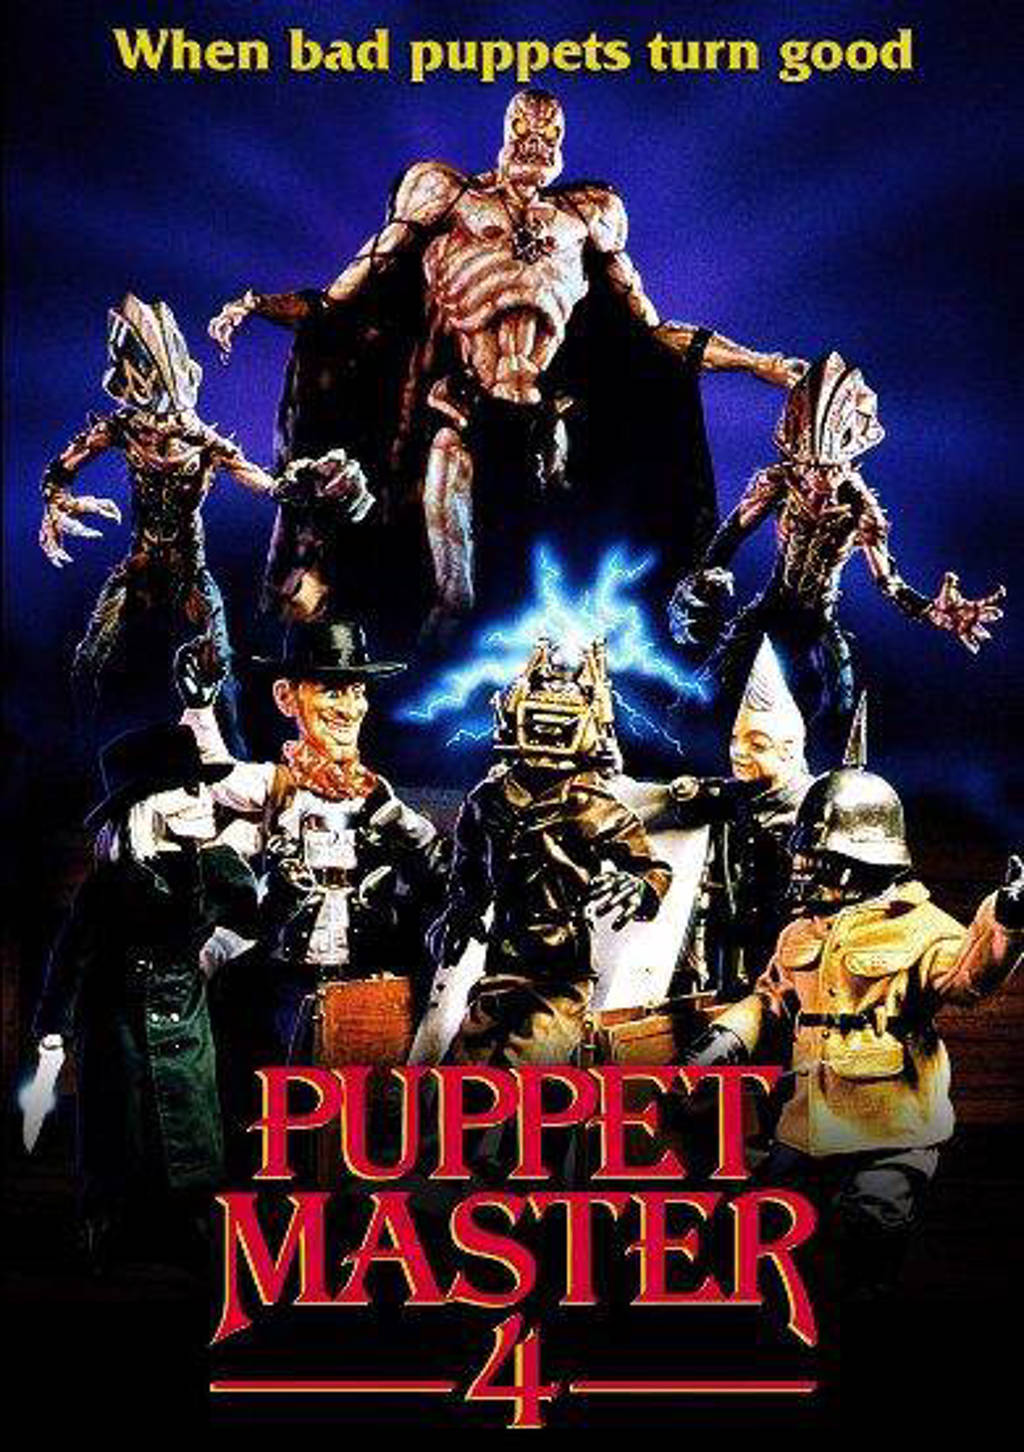 Puppet master 4 - The demon (DVD)